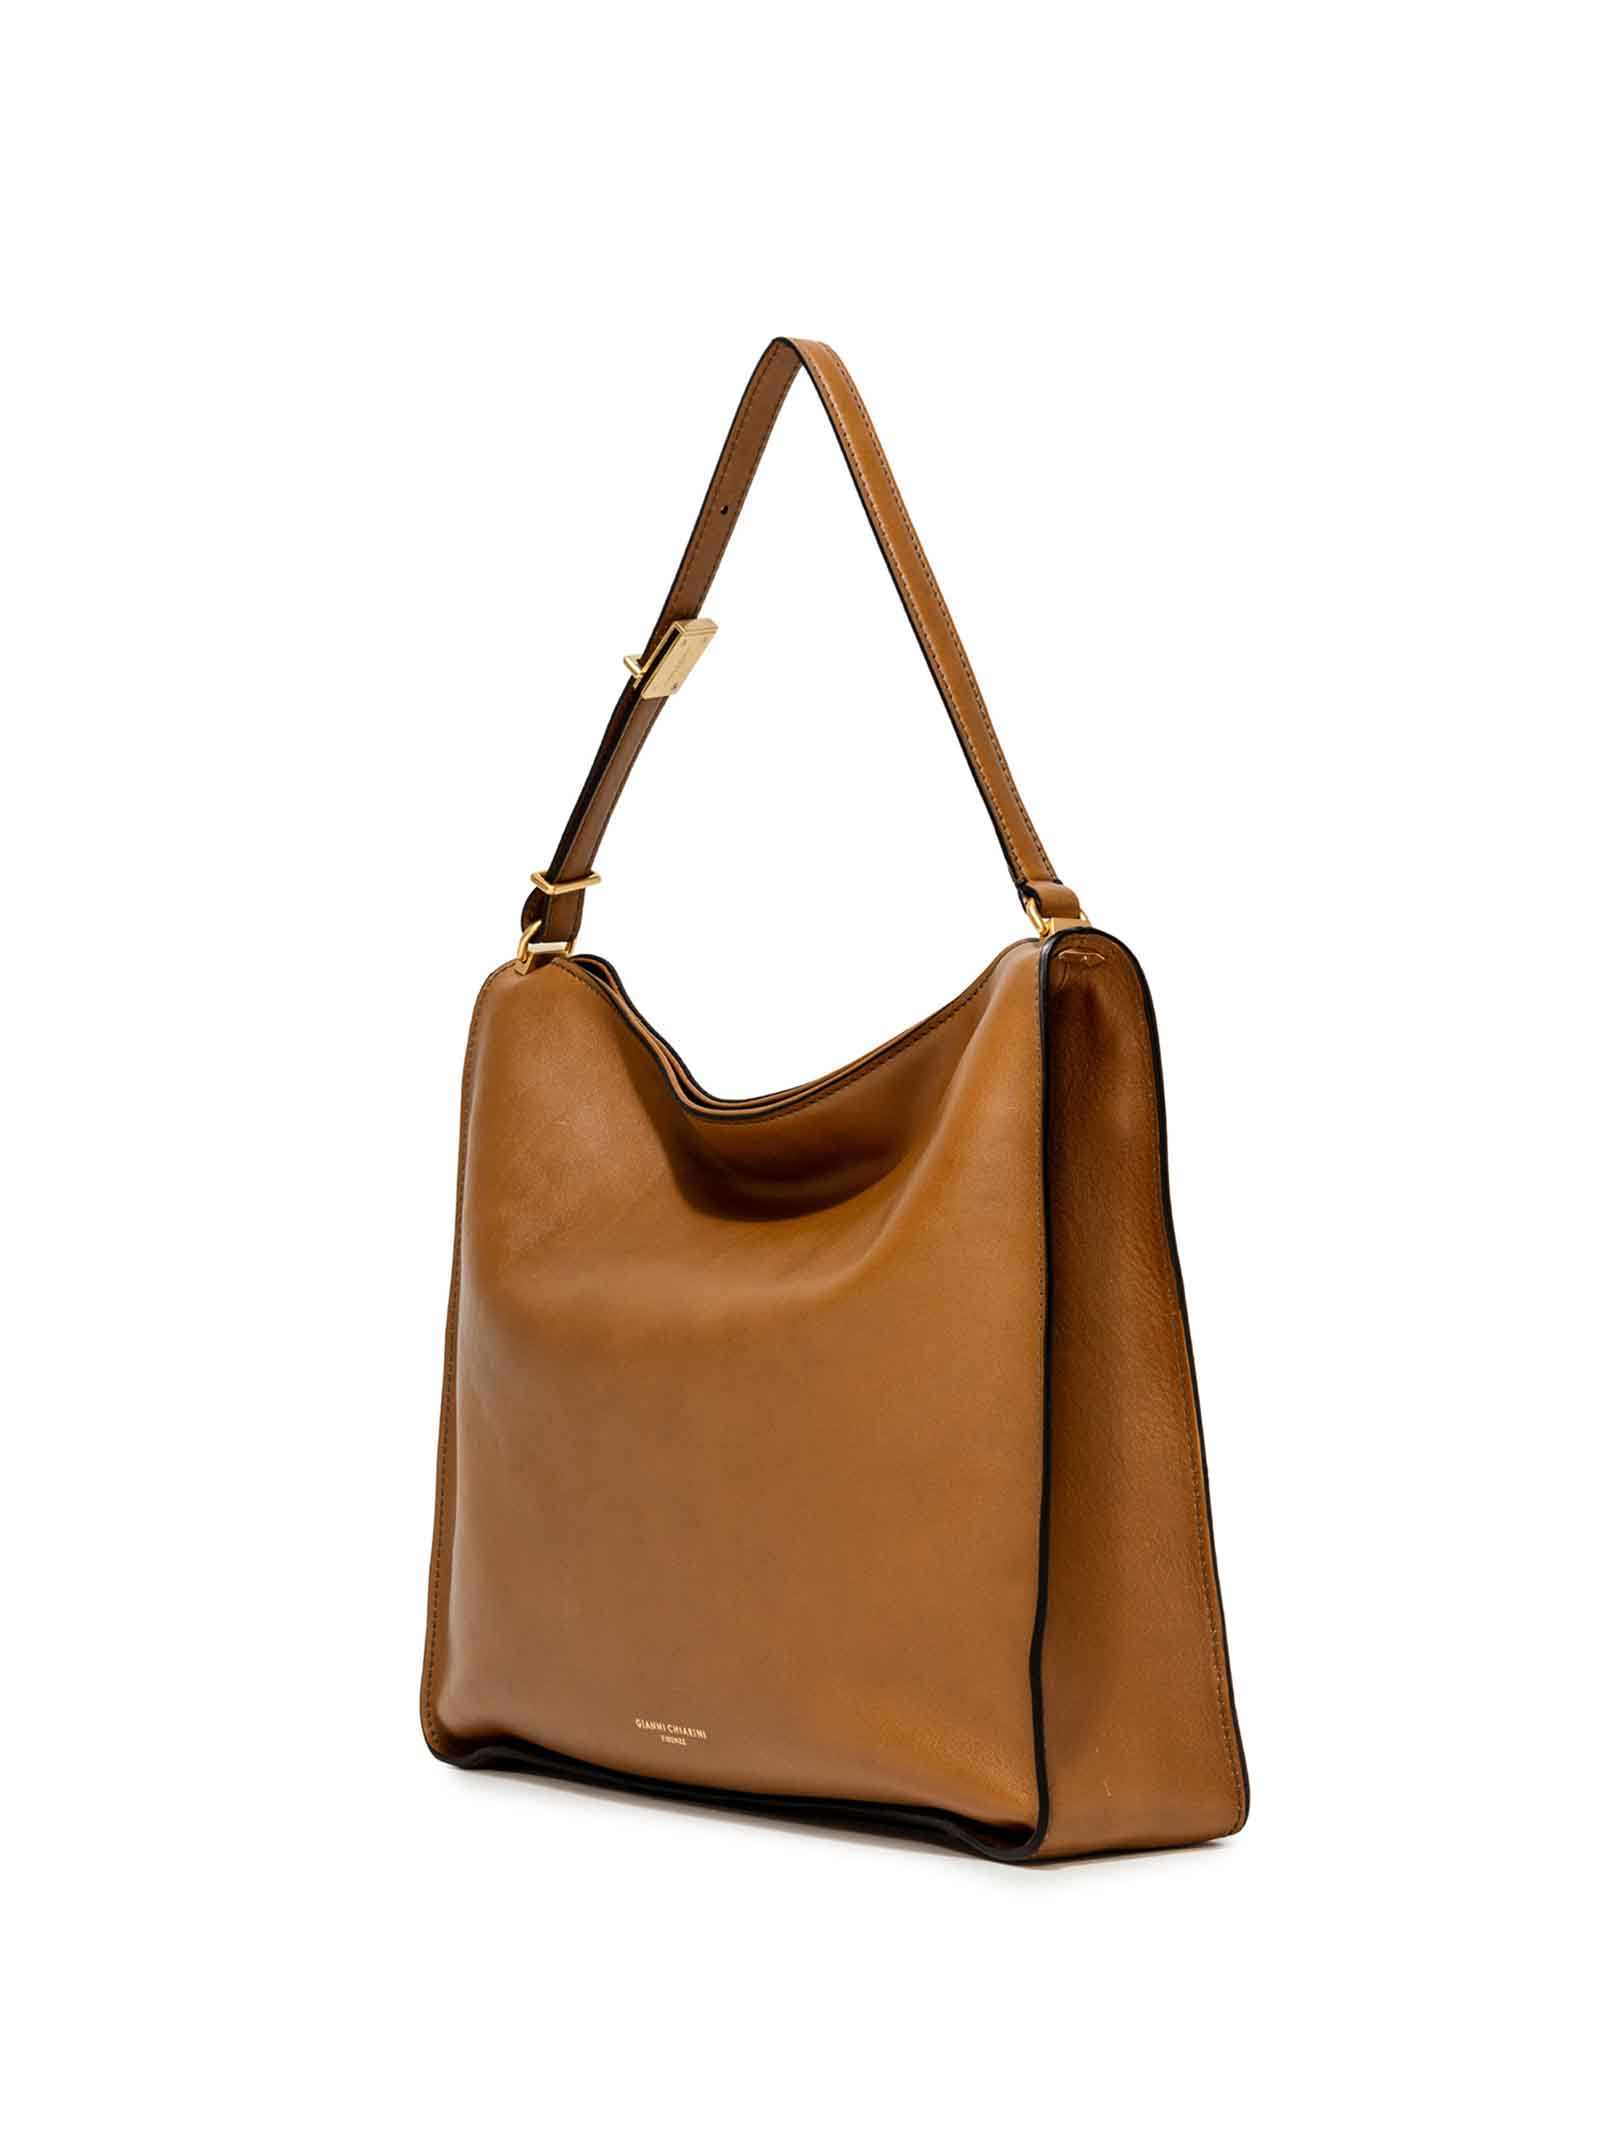 Women's Bag Renee in Tan Leather with Matched Adjustable Handle Gianni Chiarini | Bags and backpacks | BS8891206